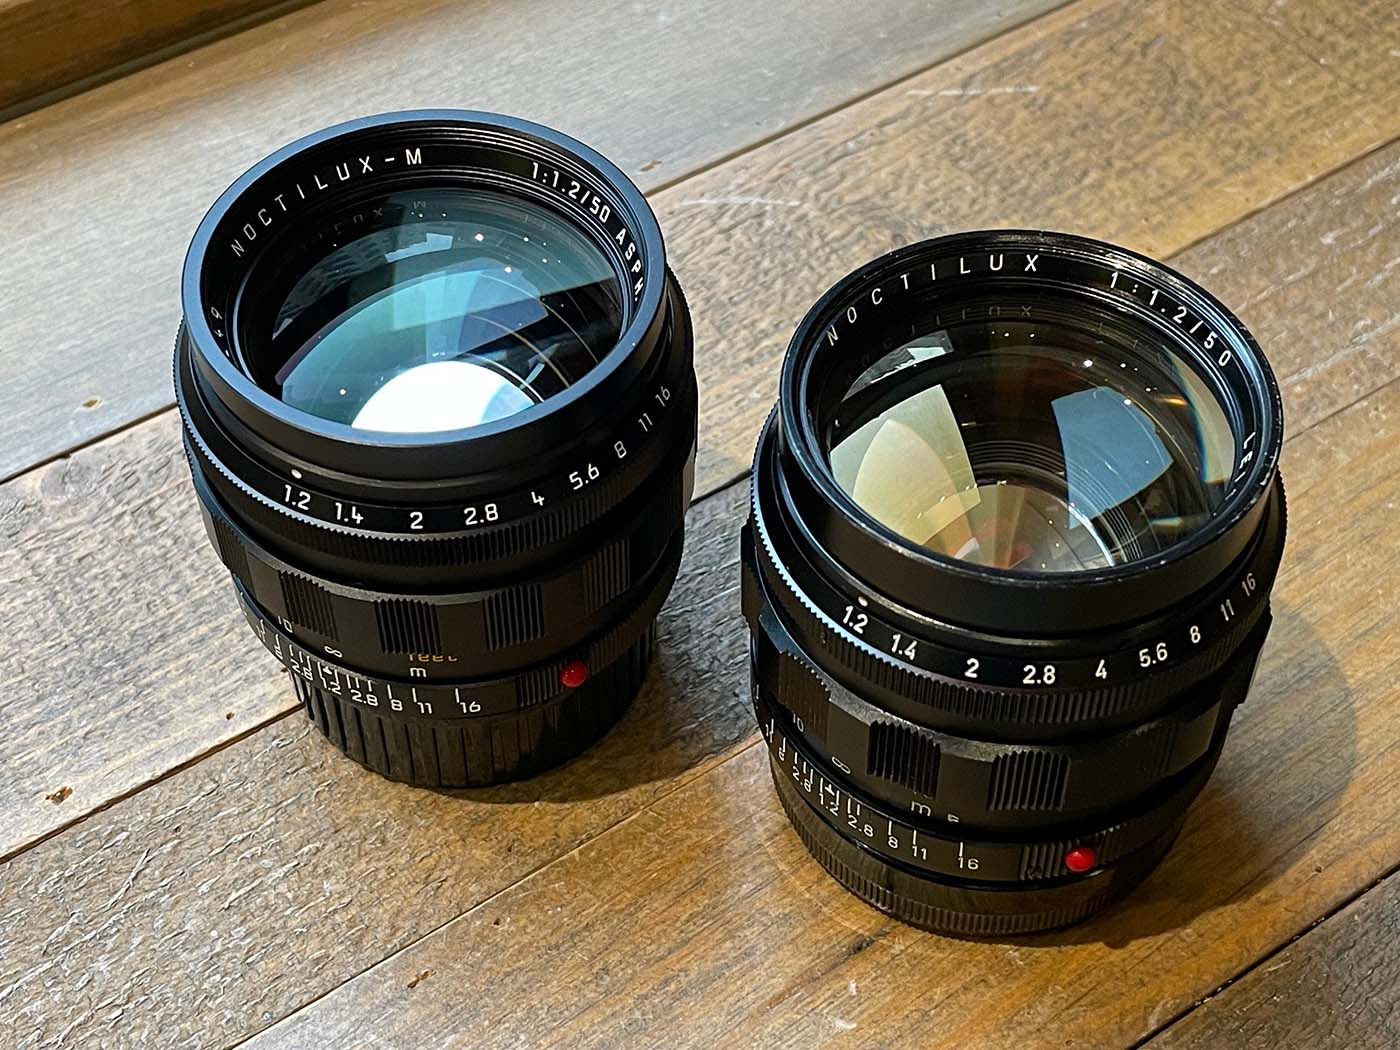 Compare-Leica-Noctilux-50mm-f1.2-50-1.2-asph-aspherical-glass-rare-reissue-original-reproduction-difference-filter-focusing-ring-curl-rim-unbox-side-by-side-comparison-lens-lenses-review-coating-colour